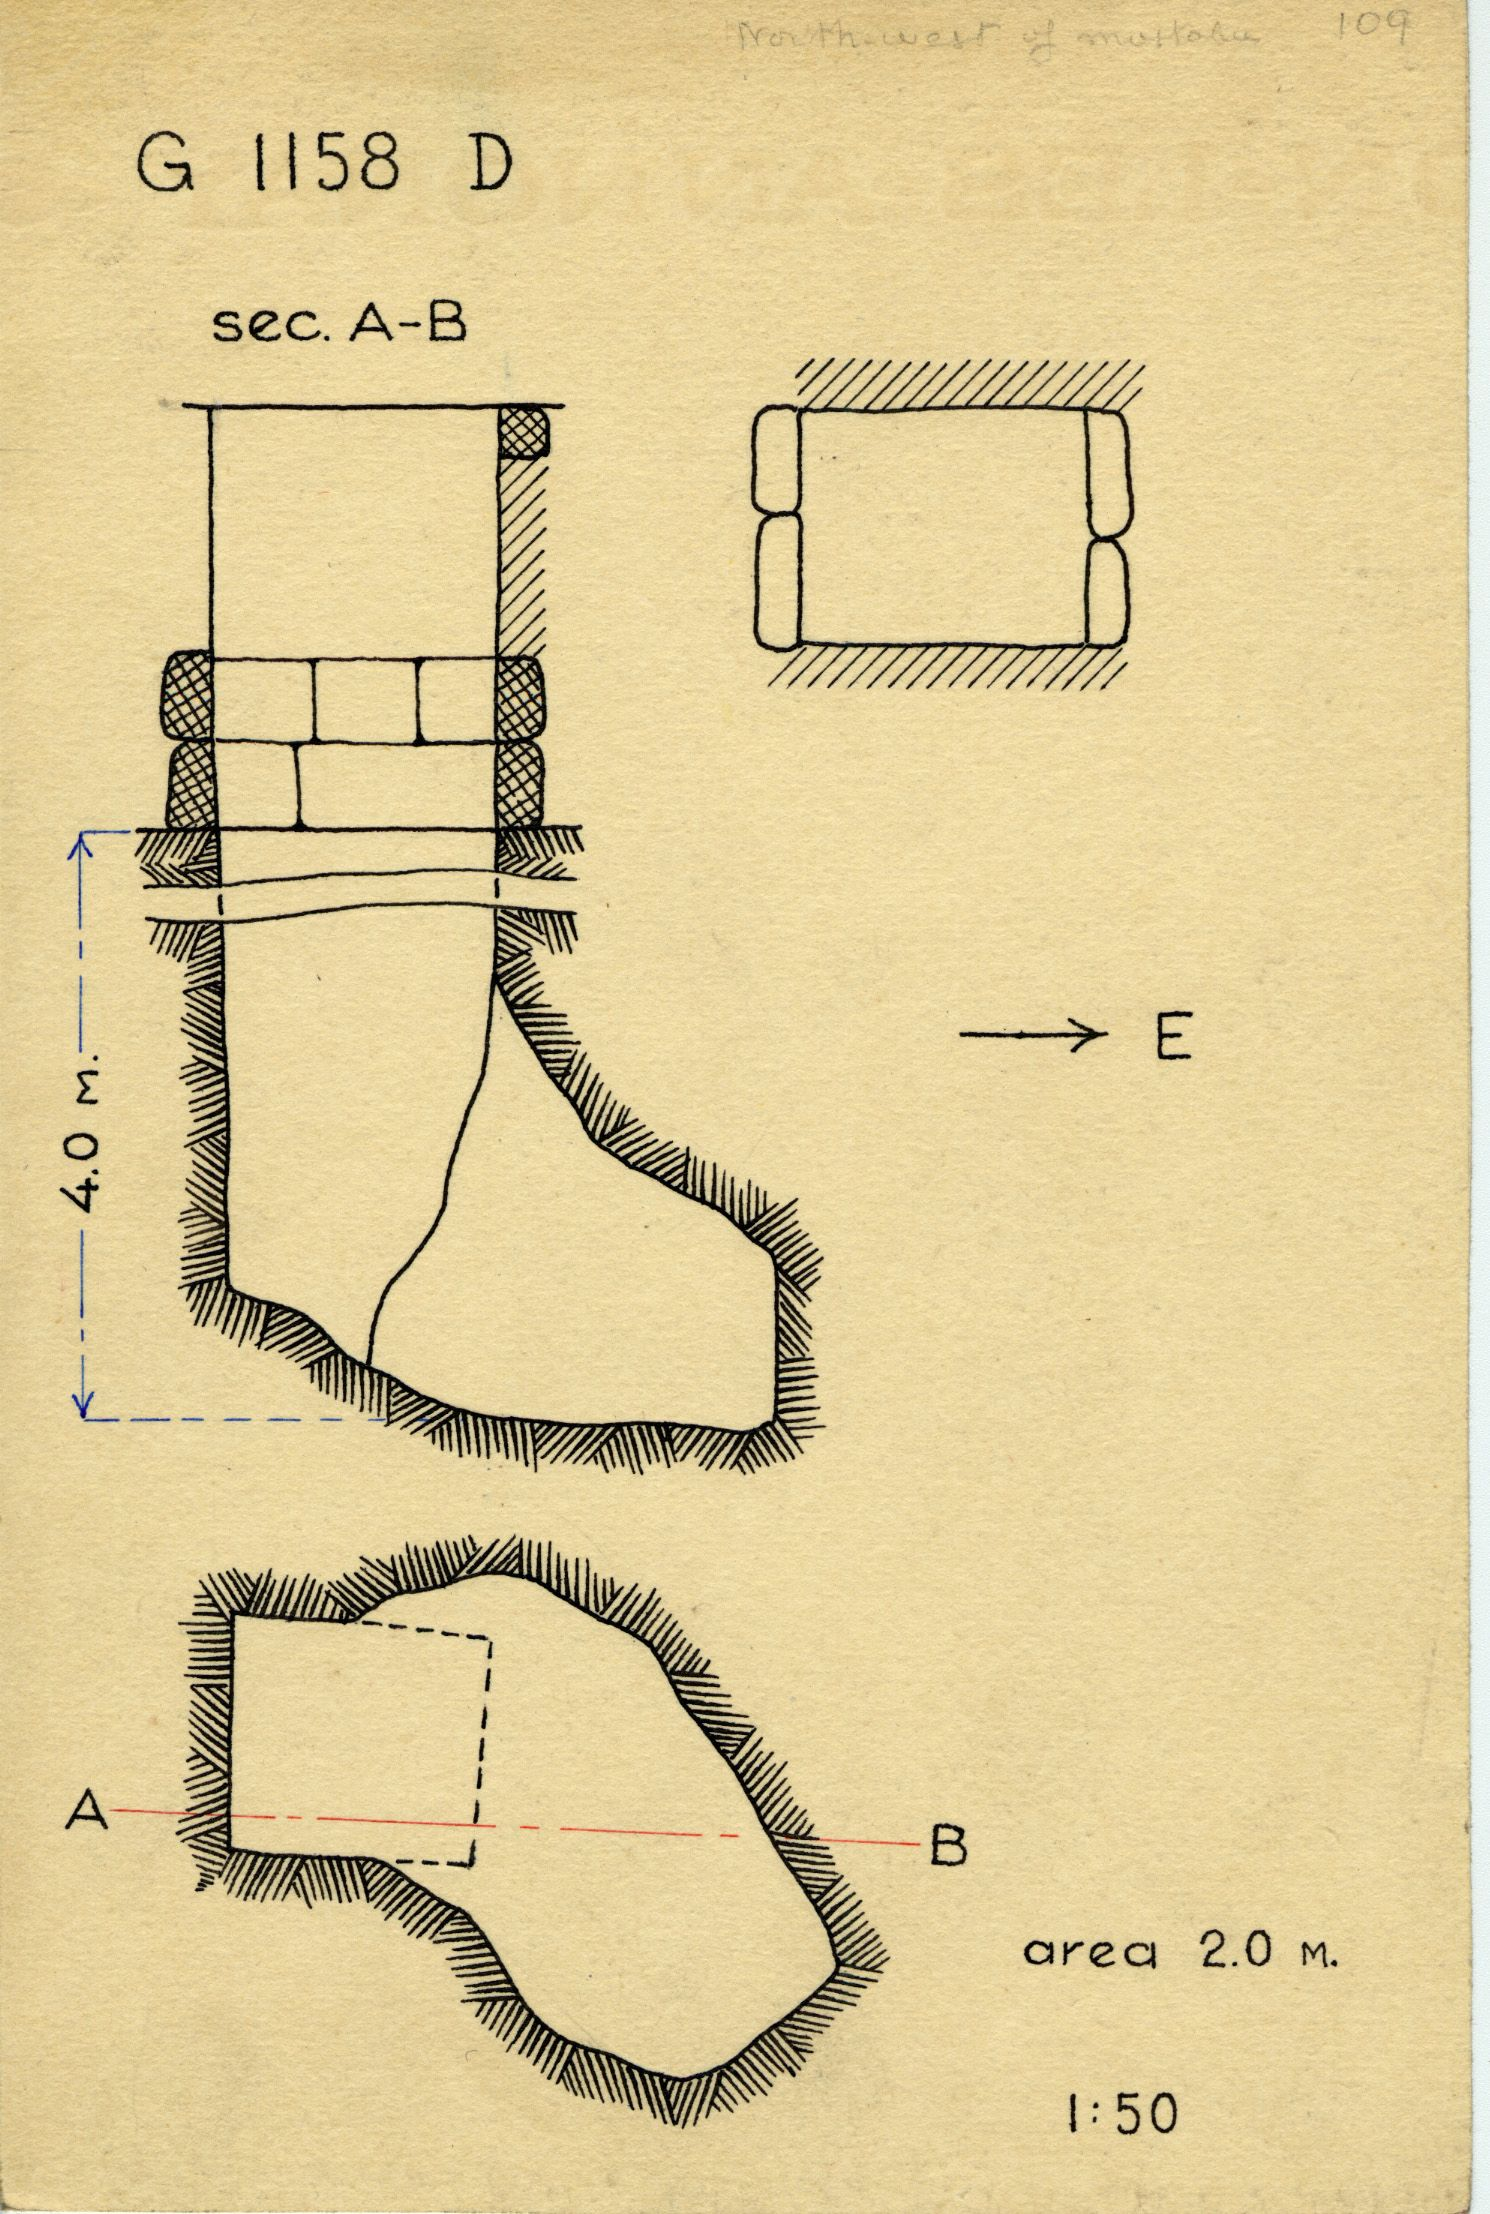 Maps and plans: G 1158, Shaft D